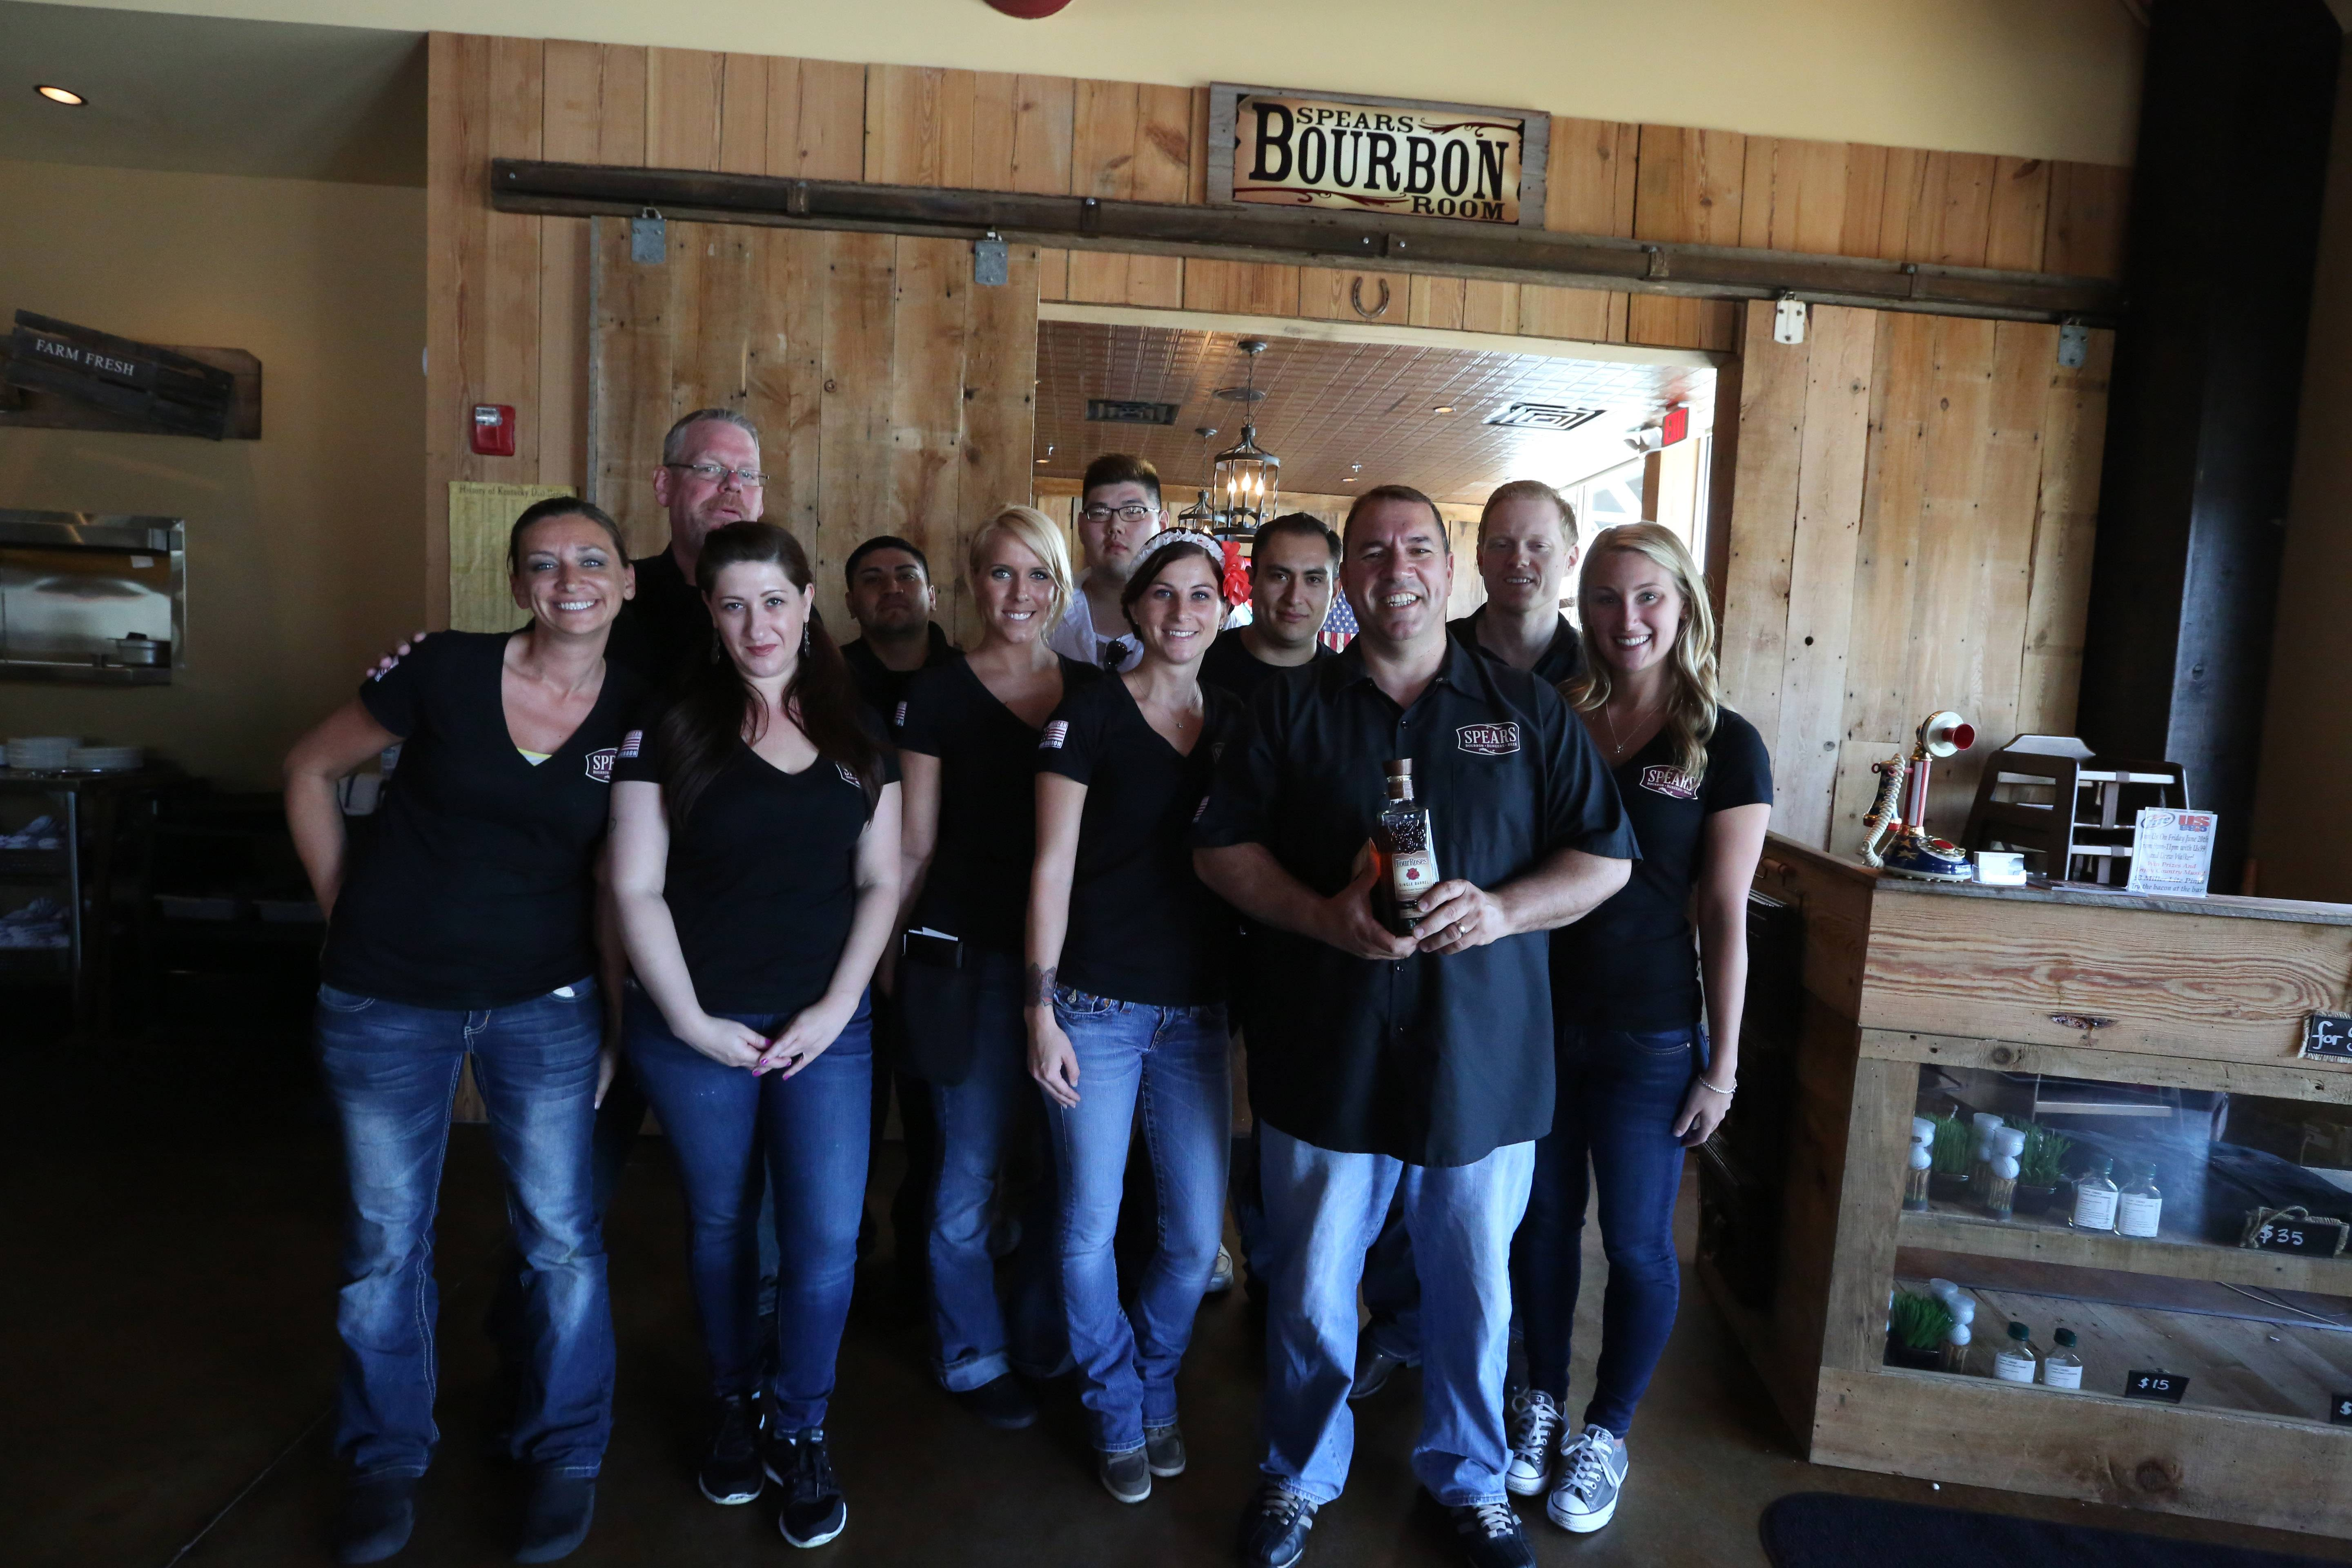 Owner Joe Romeo, holding bottle, shows off his crew at Spears in Wheeling. The eatery showcases burgers bourbon and beer.